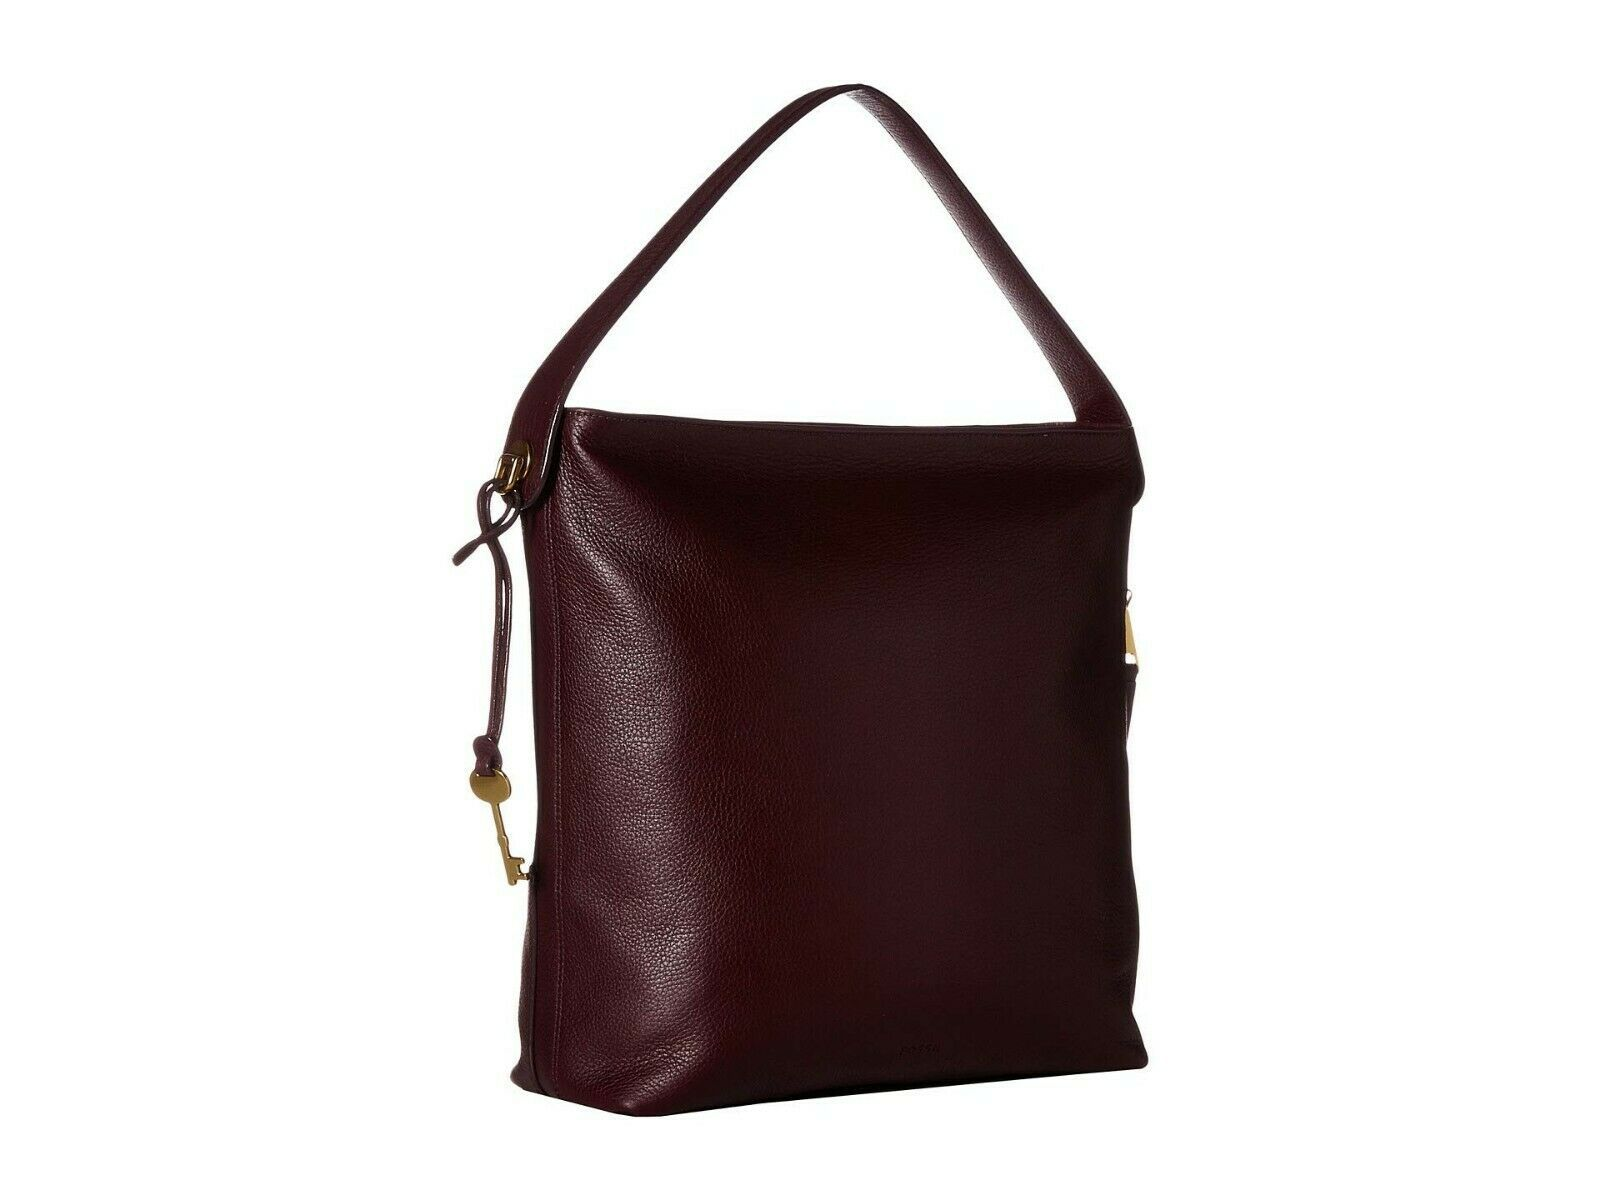 New Fossil Women's Maya Small Leather Hobo Bag Variety Colors image 11